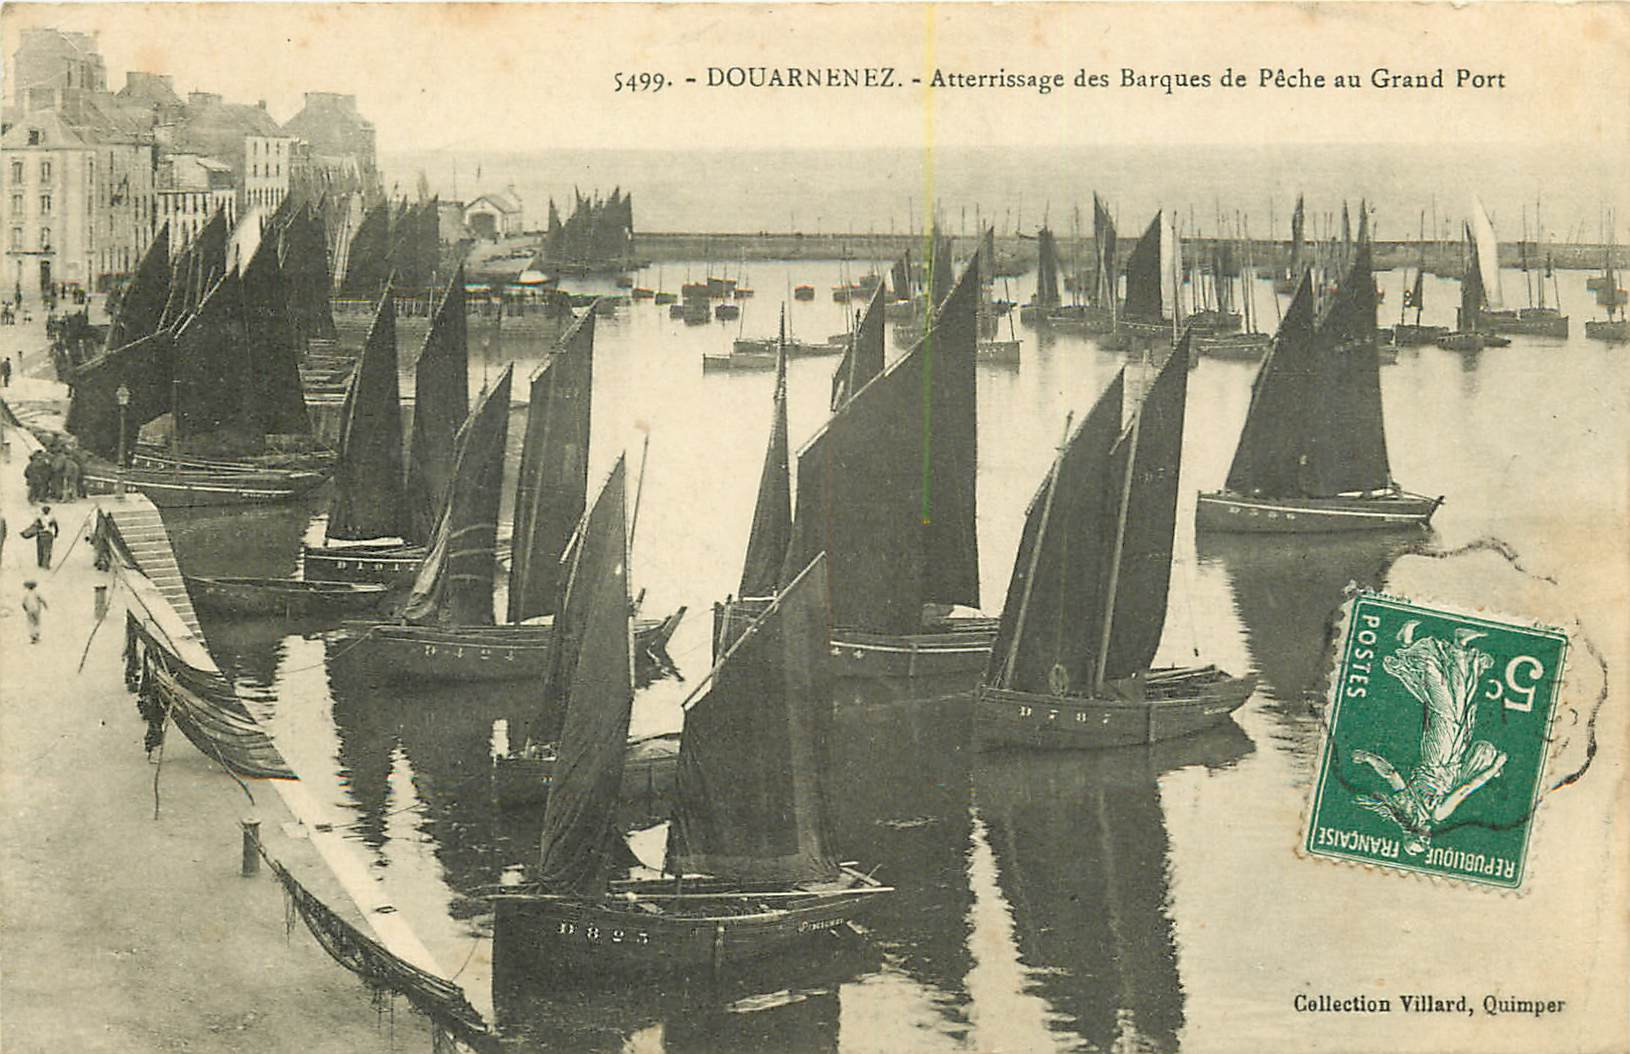 WW 29 DOURNENEZ. Atterrissage des barques de Pêche au Grand Port 1909